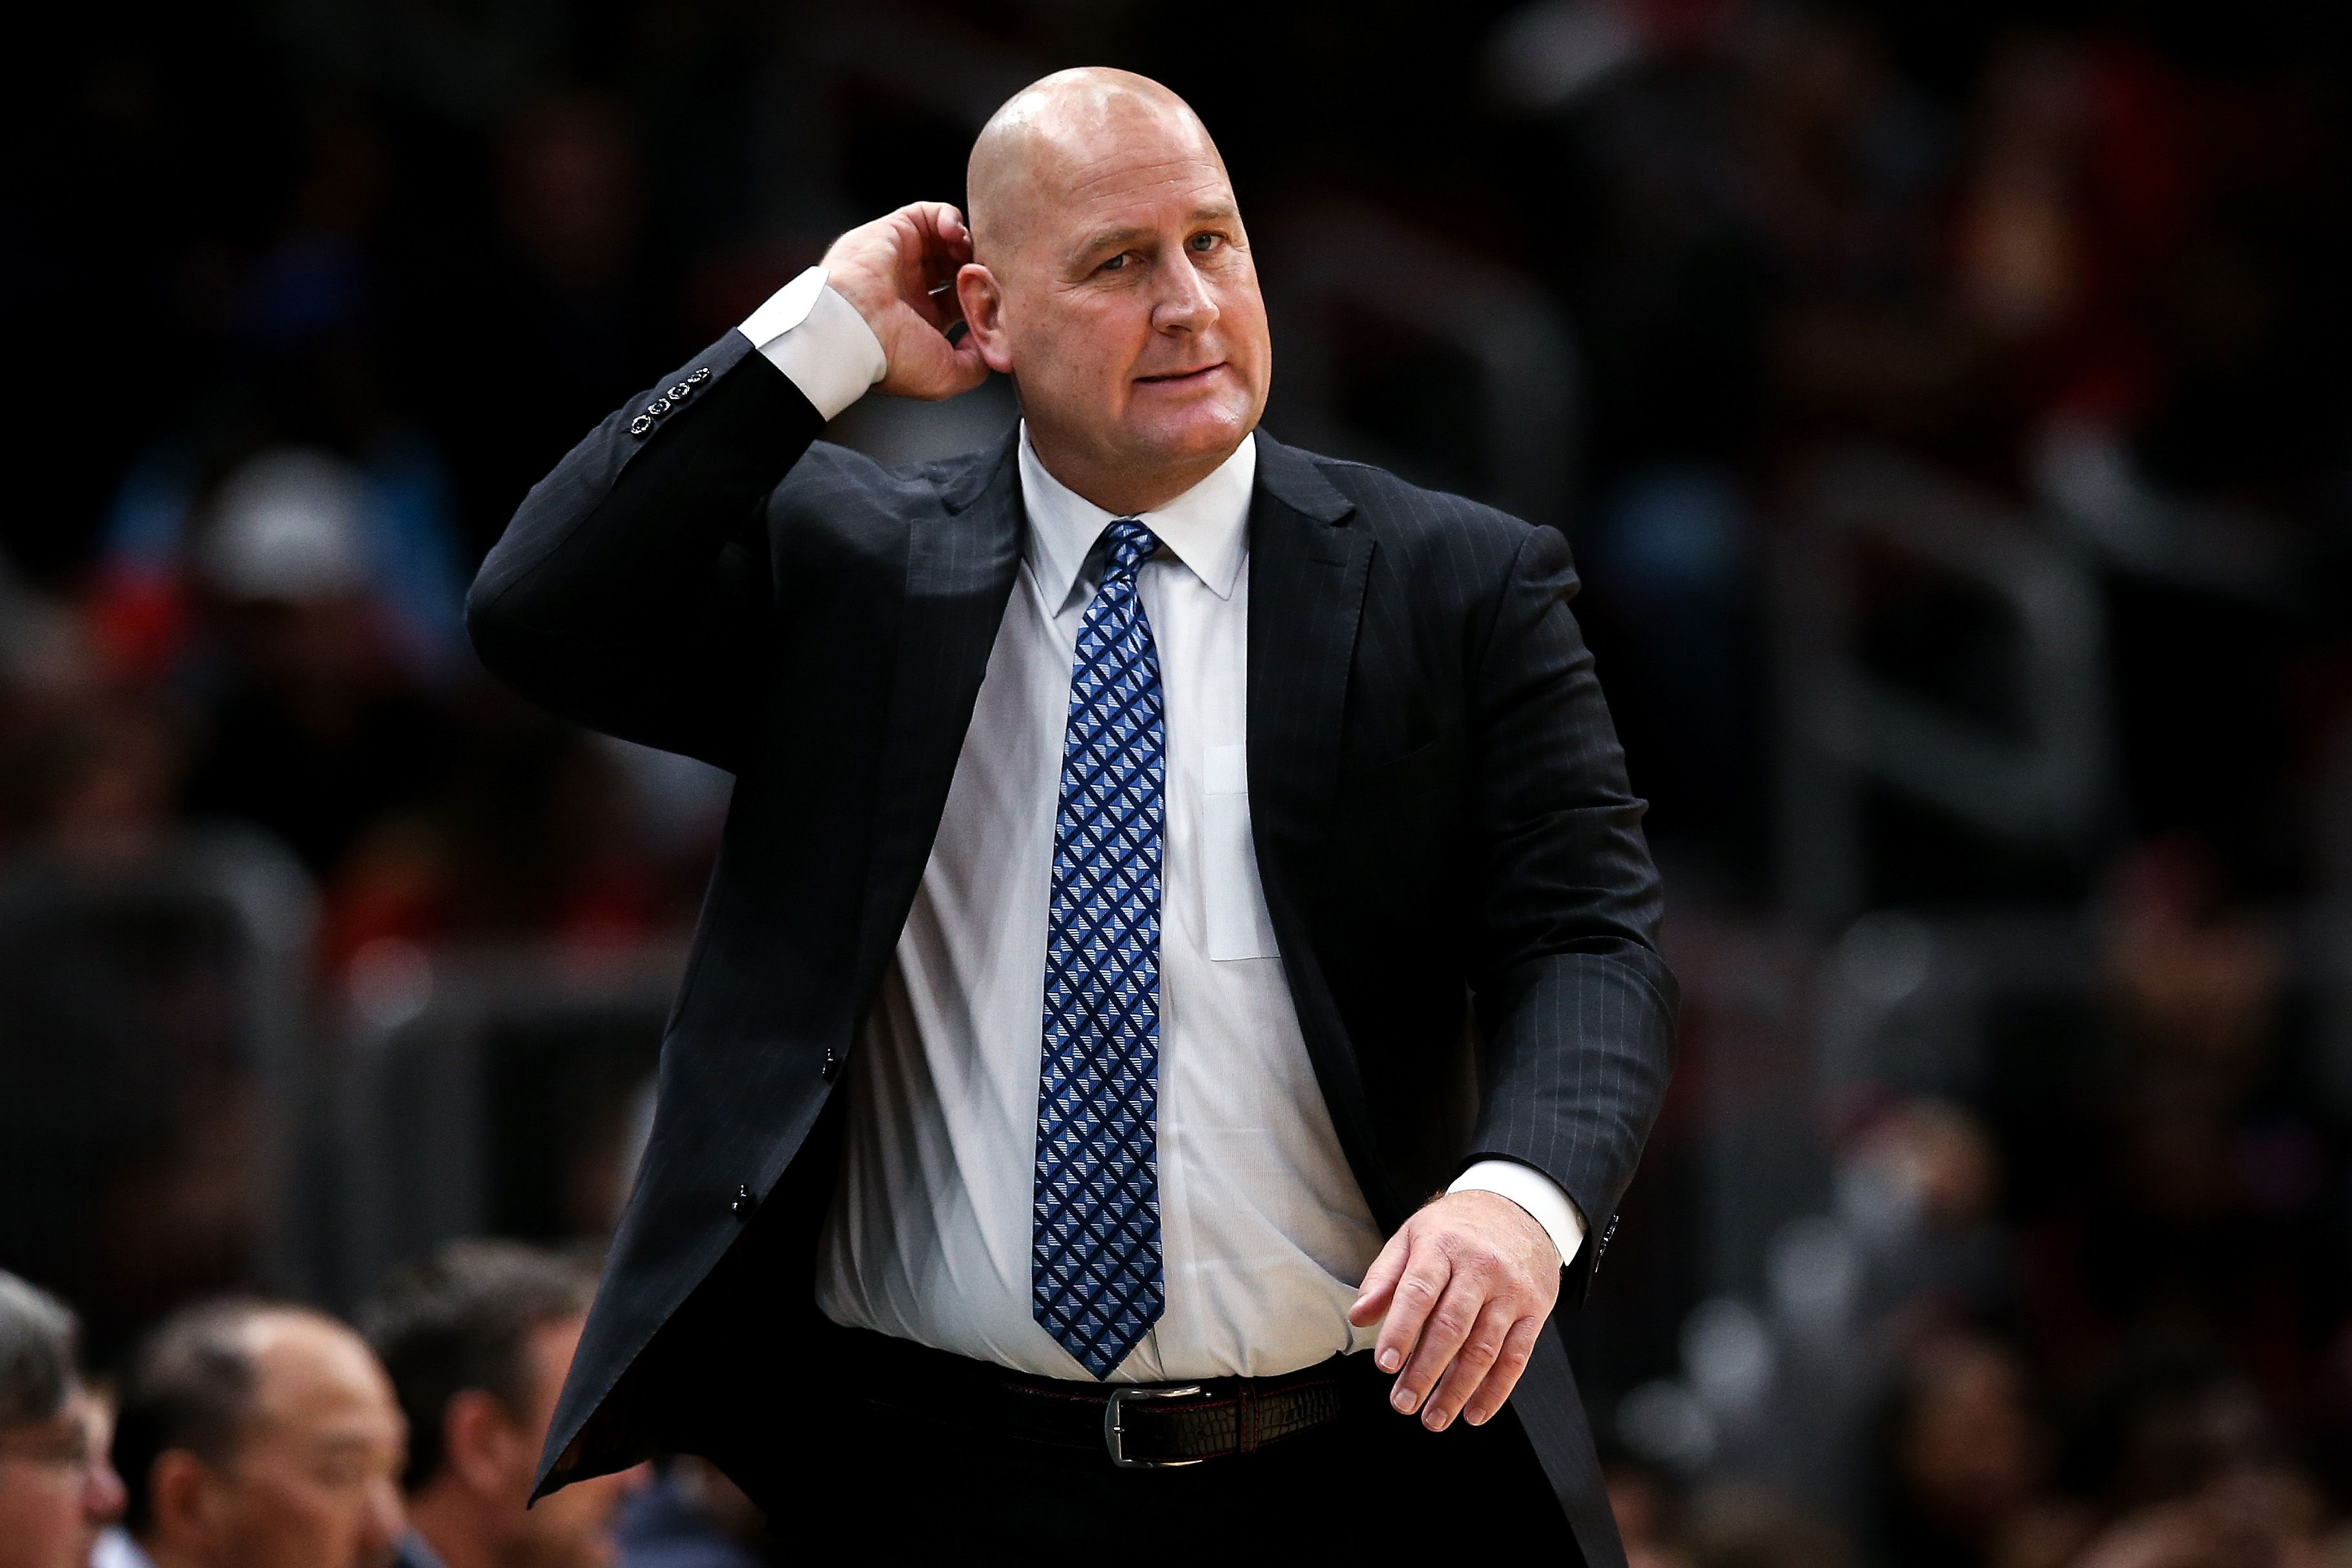 The Bulls and coach Jim Boylen remain in a holding pattern.